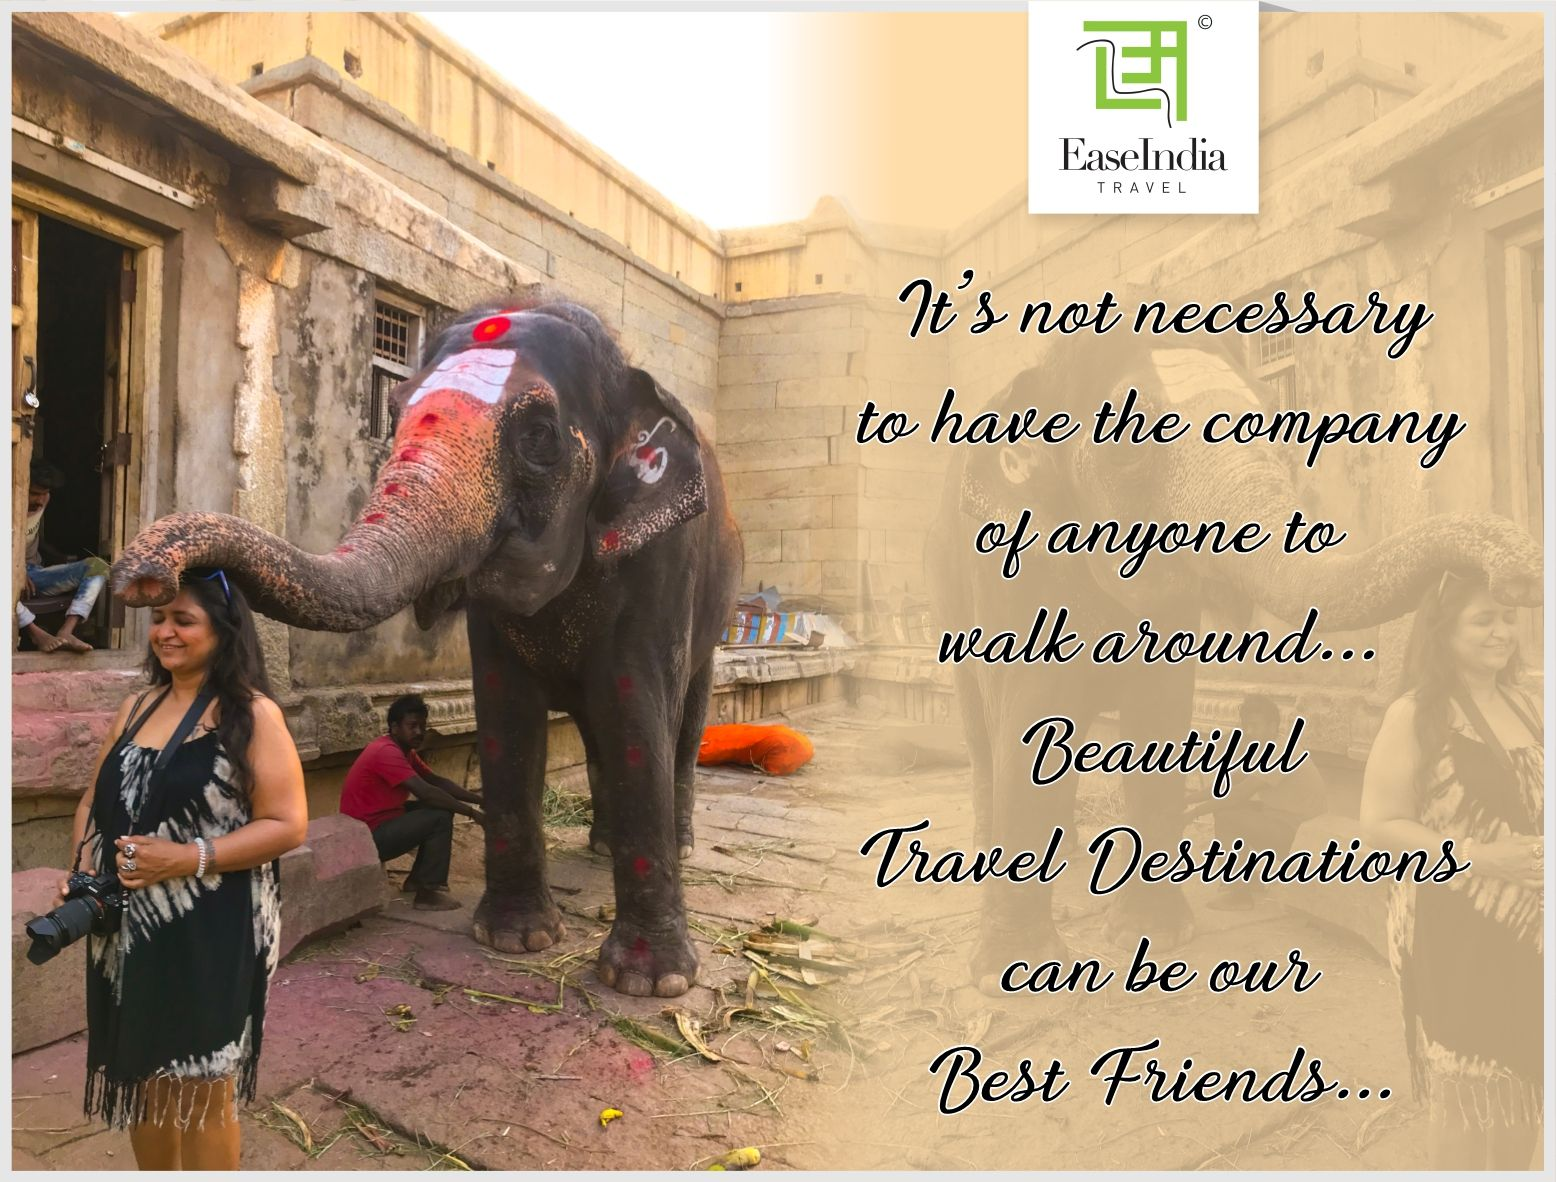 Travel destinations can be our best friends... Sometimes traveling solo can help us to connect with ourselves.   #wednesday #travelquotes #quotes #travel #wednesdaywisdom #humpday #easeindiatravel #experiencetravel #travelindustry #travelbug #traveller #travelholic #hampi #hampitourism #tourism #travelust #wanderlust #traveldestinations #destination #stayhomestaysafe #weareinthistogether